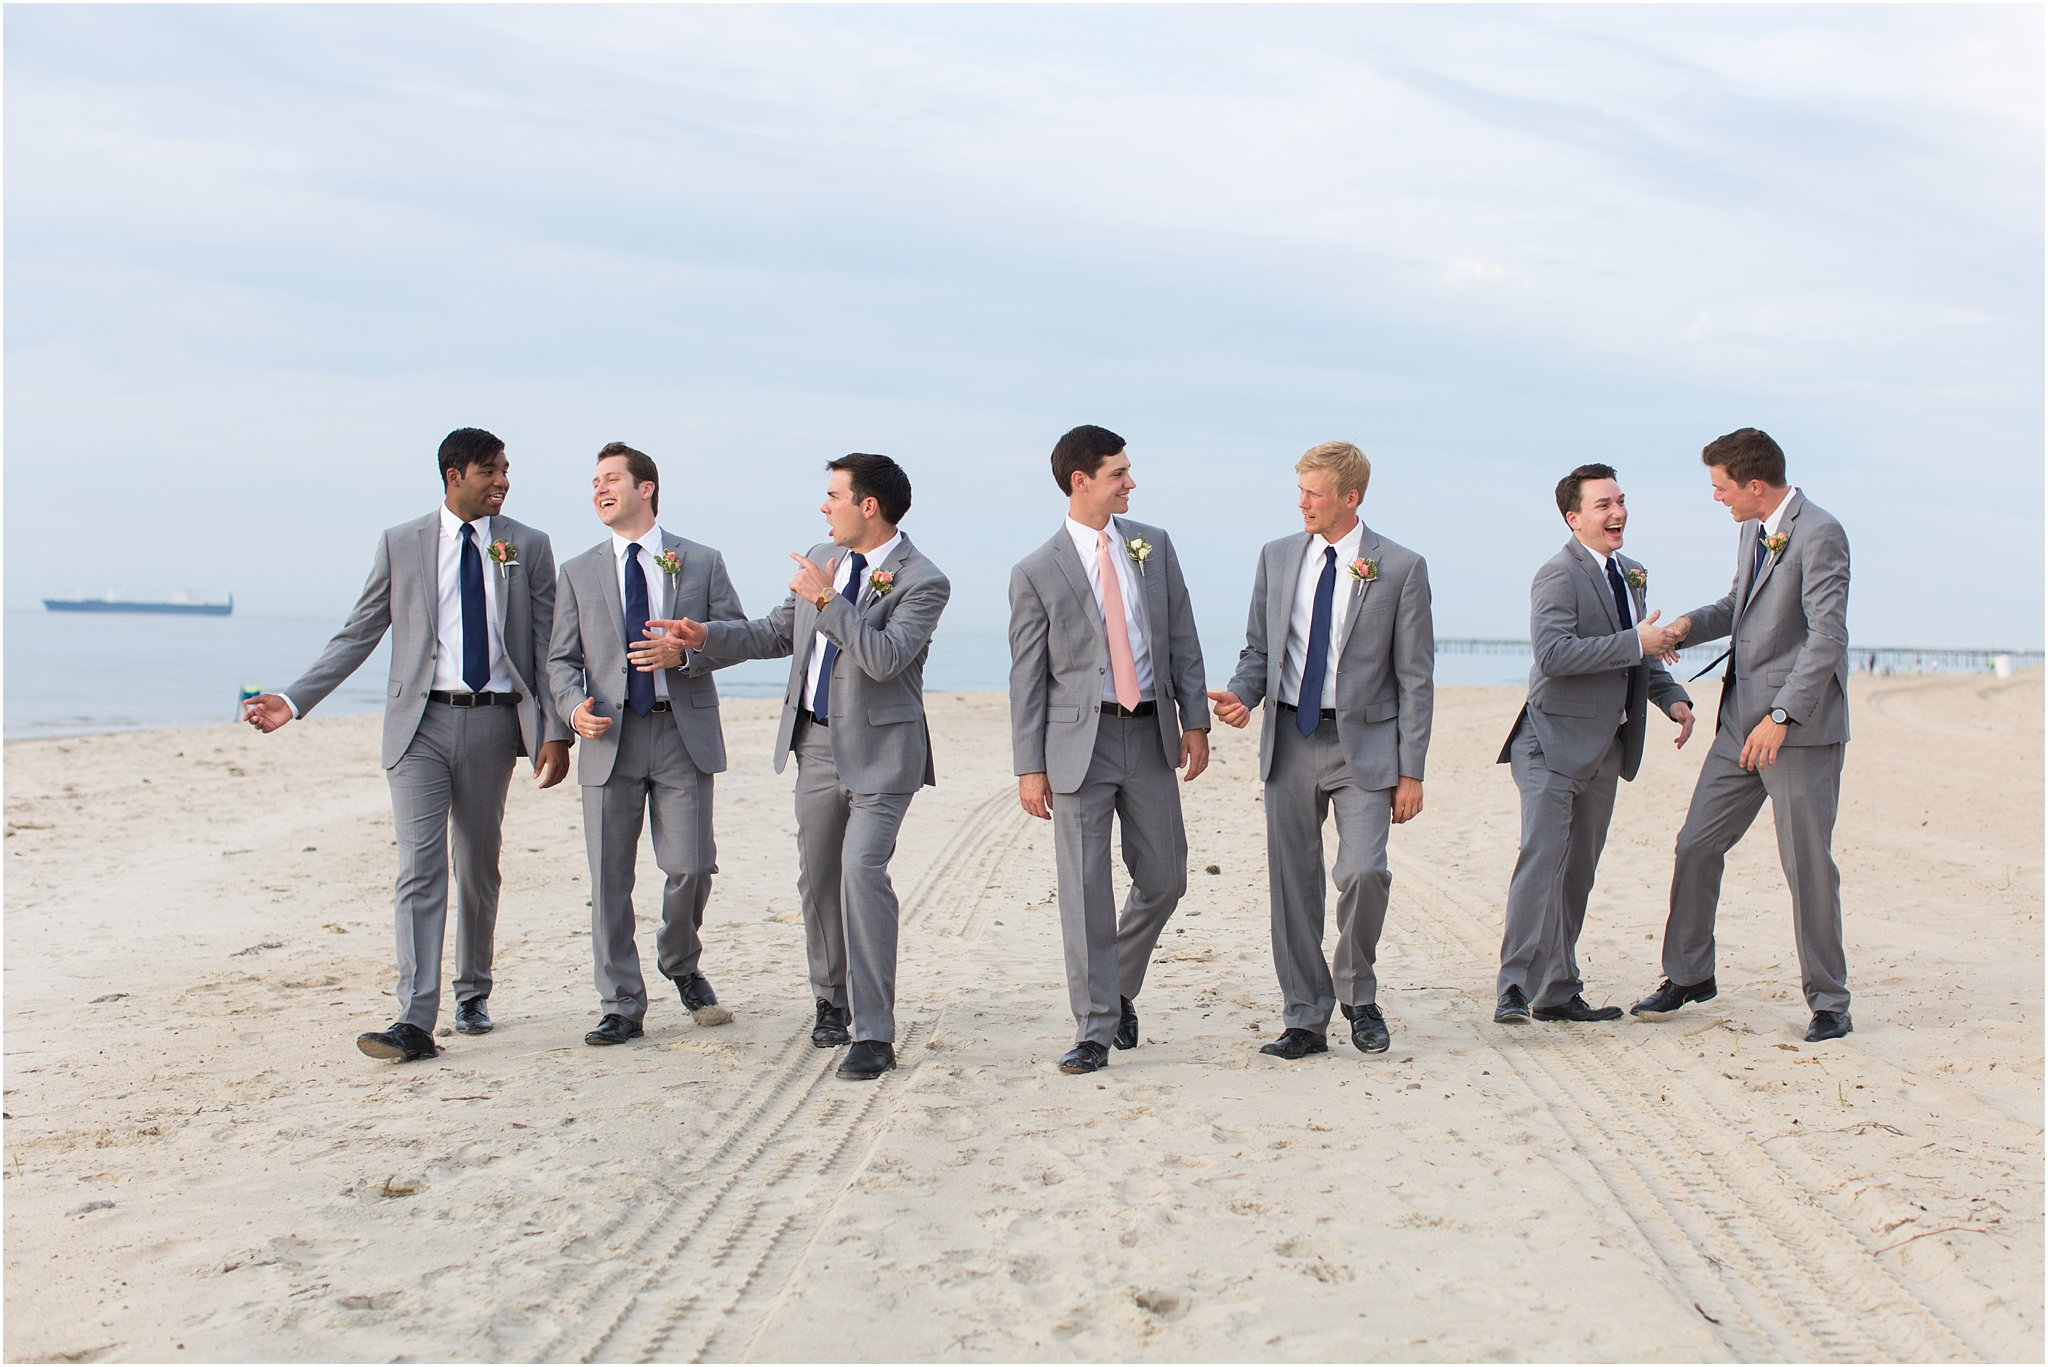 jessica_ryan_photography_wedding_photography_virginiabeach_virginia_candid_authentic_wedding_portraits_marina_shores_yacht_club_chesapeake_bay_1861